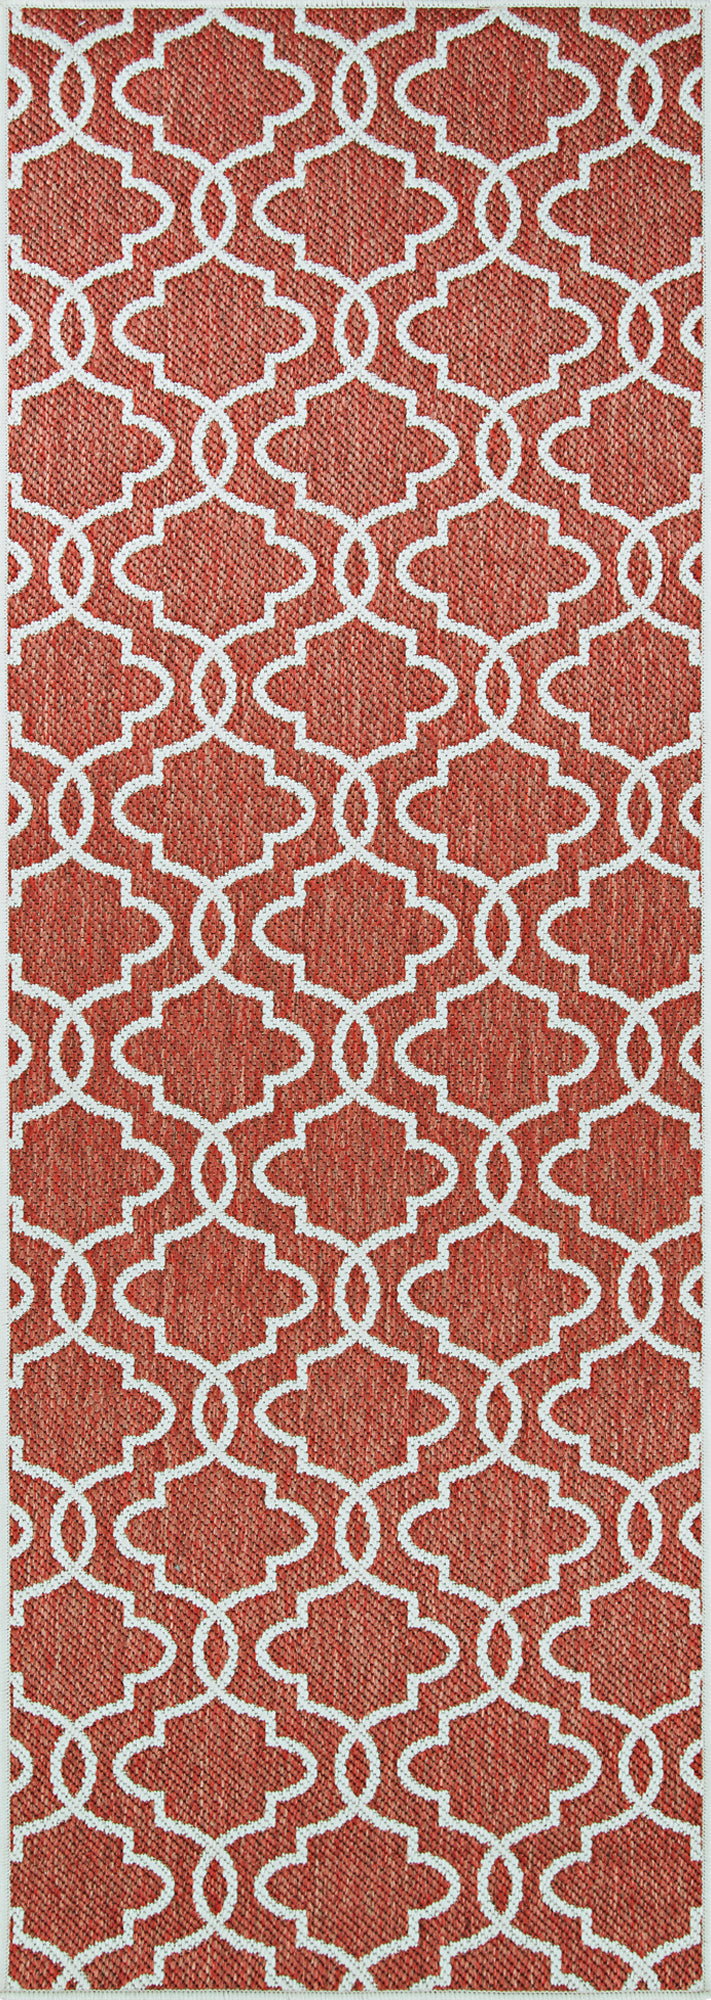 Couristan Outdurables Cliff Walk Coral and Dune Area Rug main image